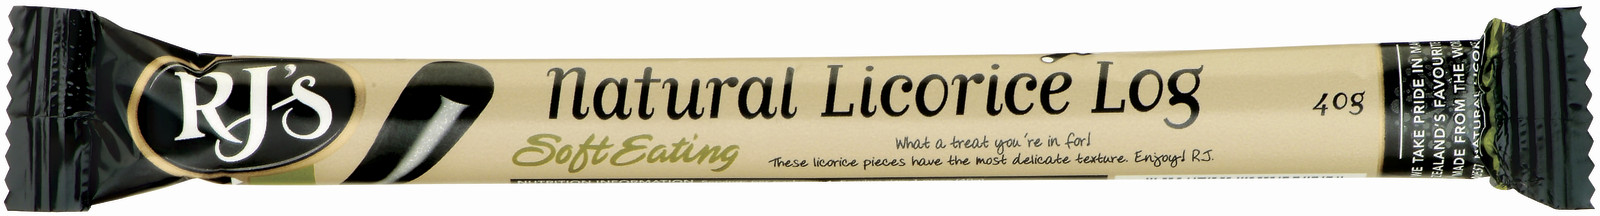 RJ's Soft Eating Licorice Single Logs (30 Pack) image